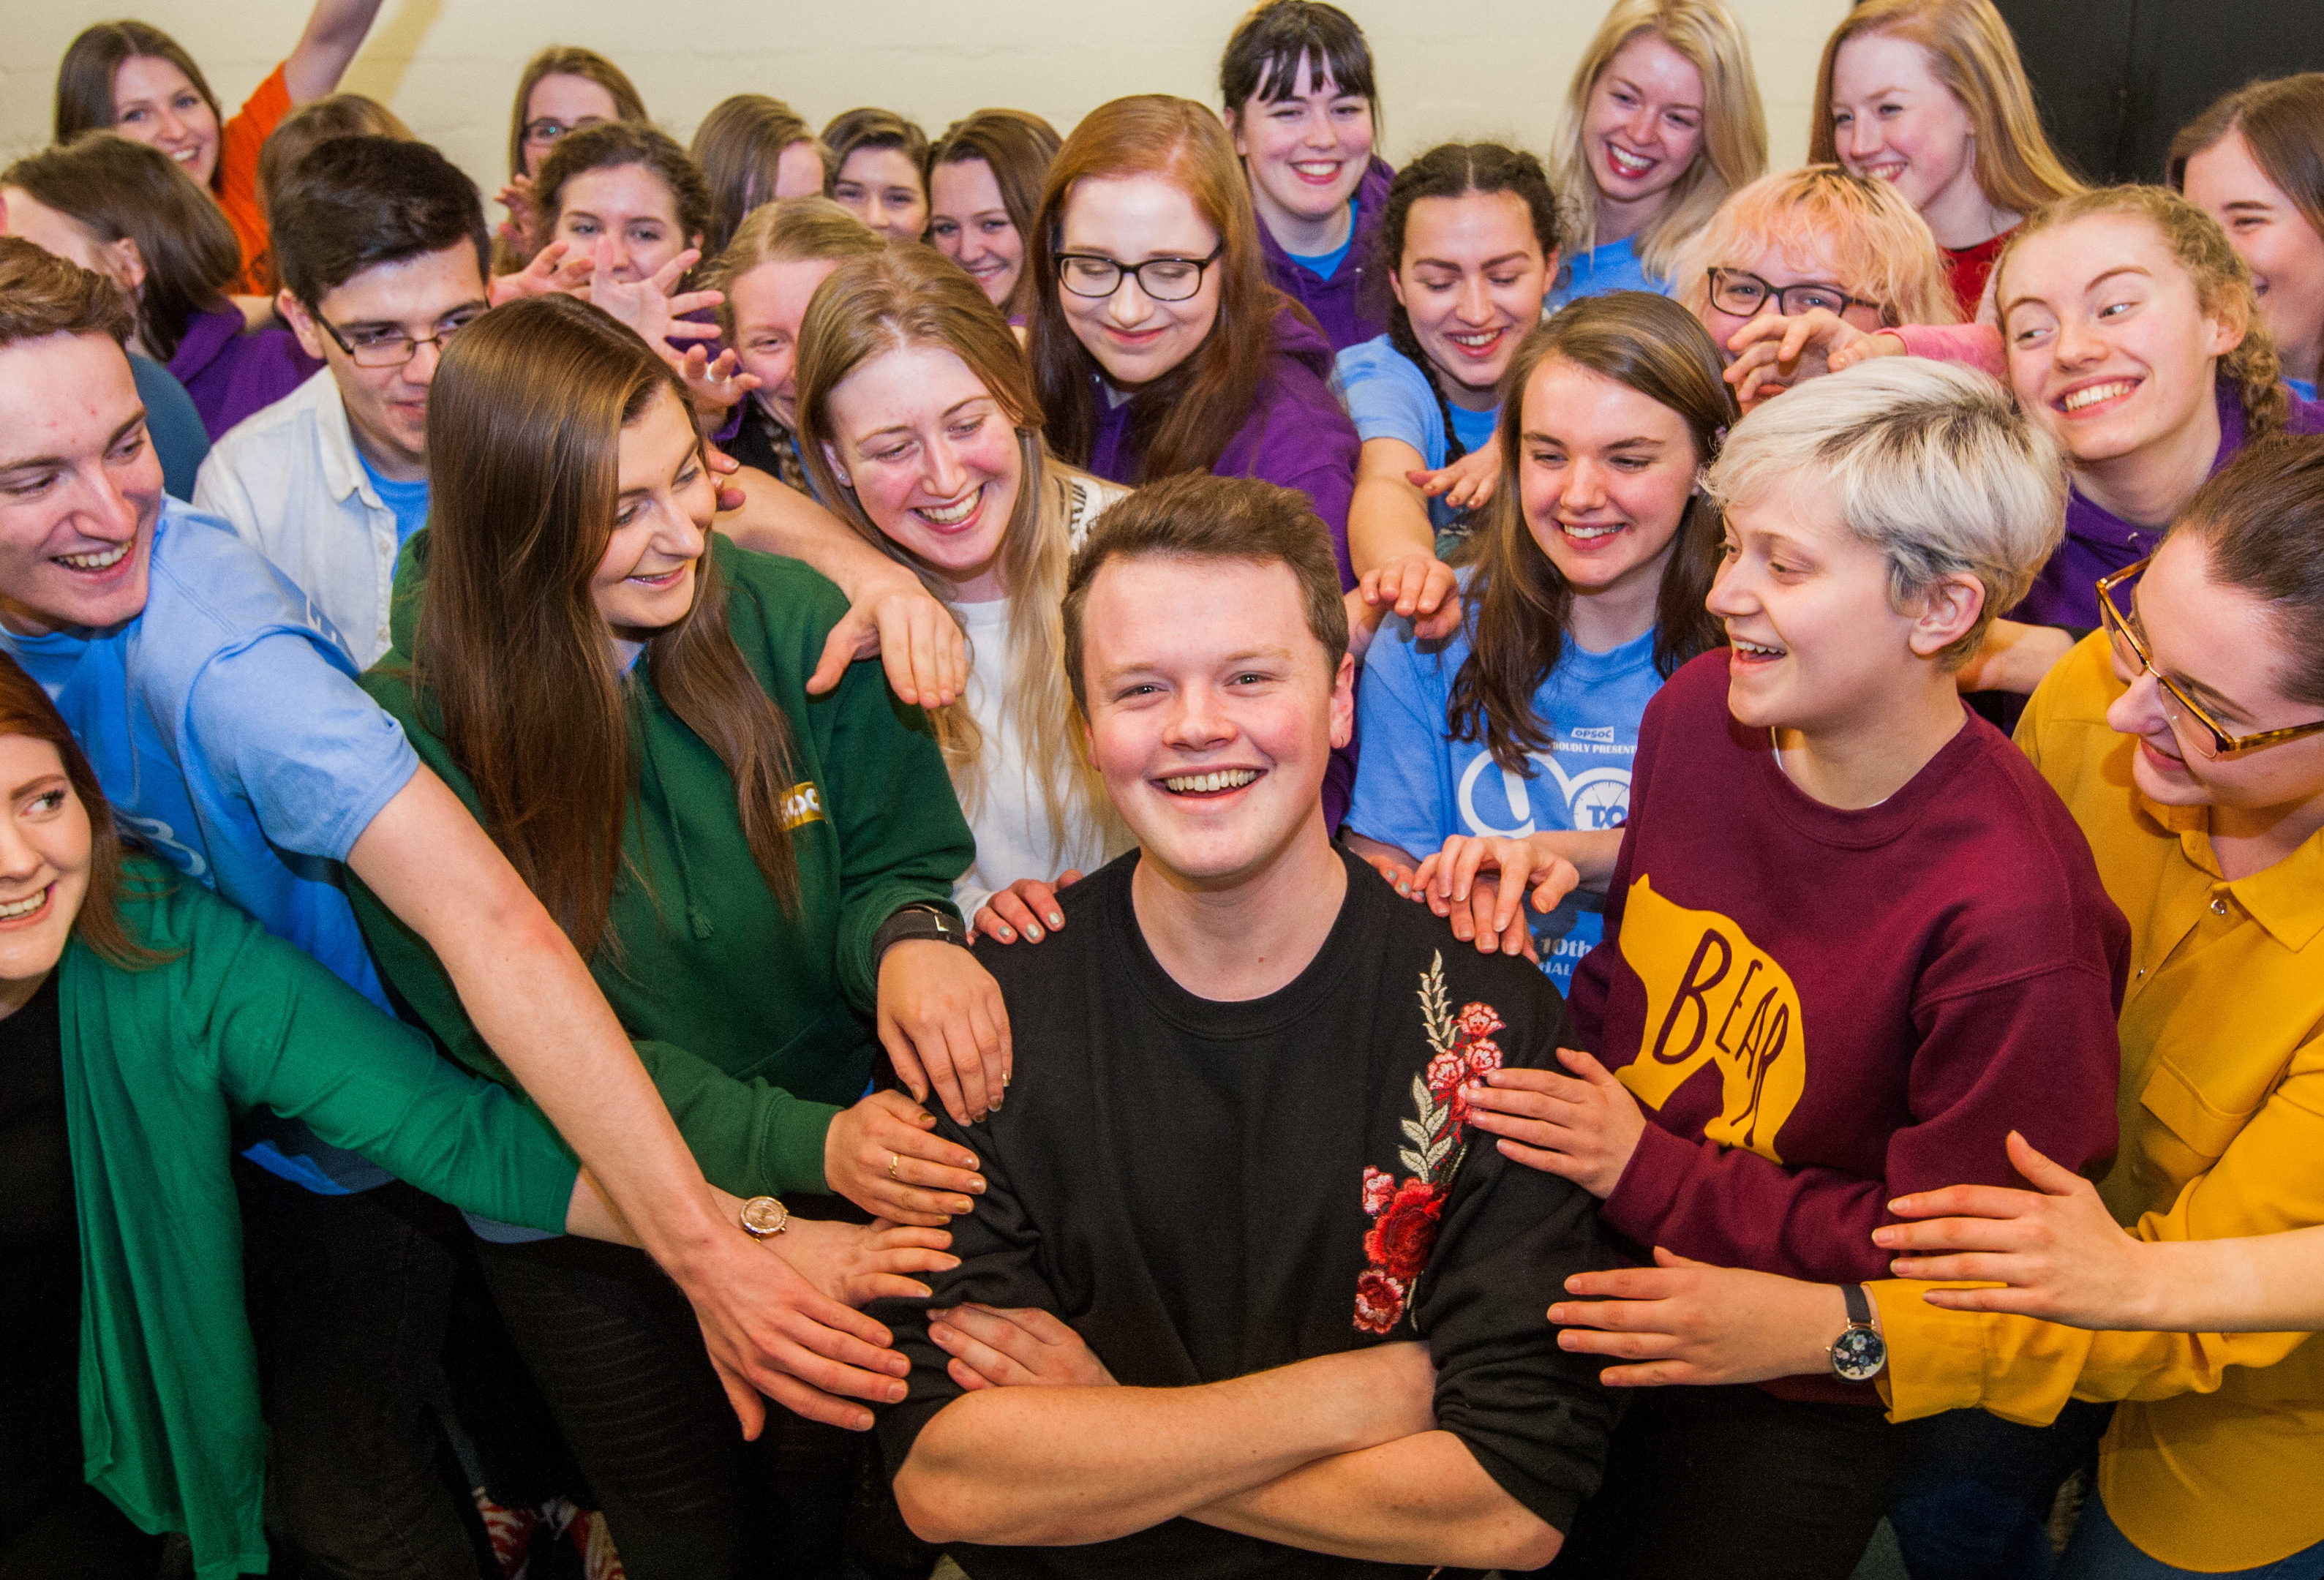 Neil Lavin, a fourth year student at Duncan of Jordanstone College of Art and Design who is also director of Dundee University Amateur Operatic Society. Picture shows Neil Lavin (Director) in the centre surrounded by members